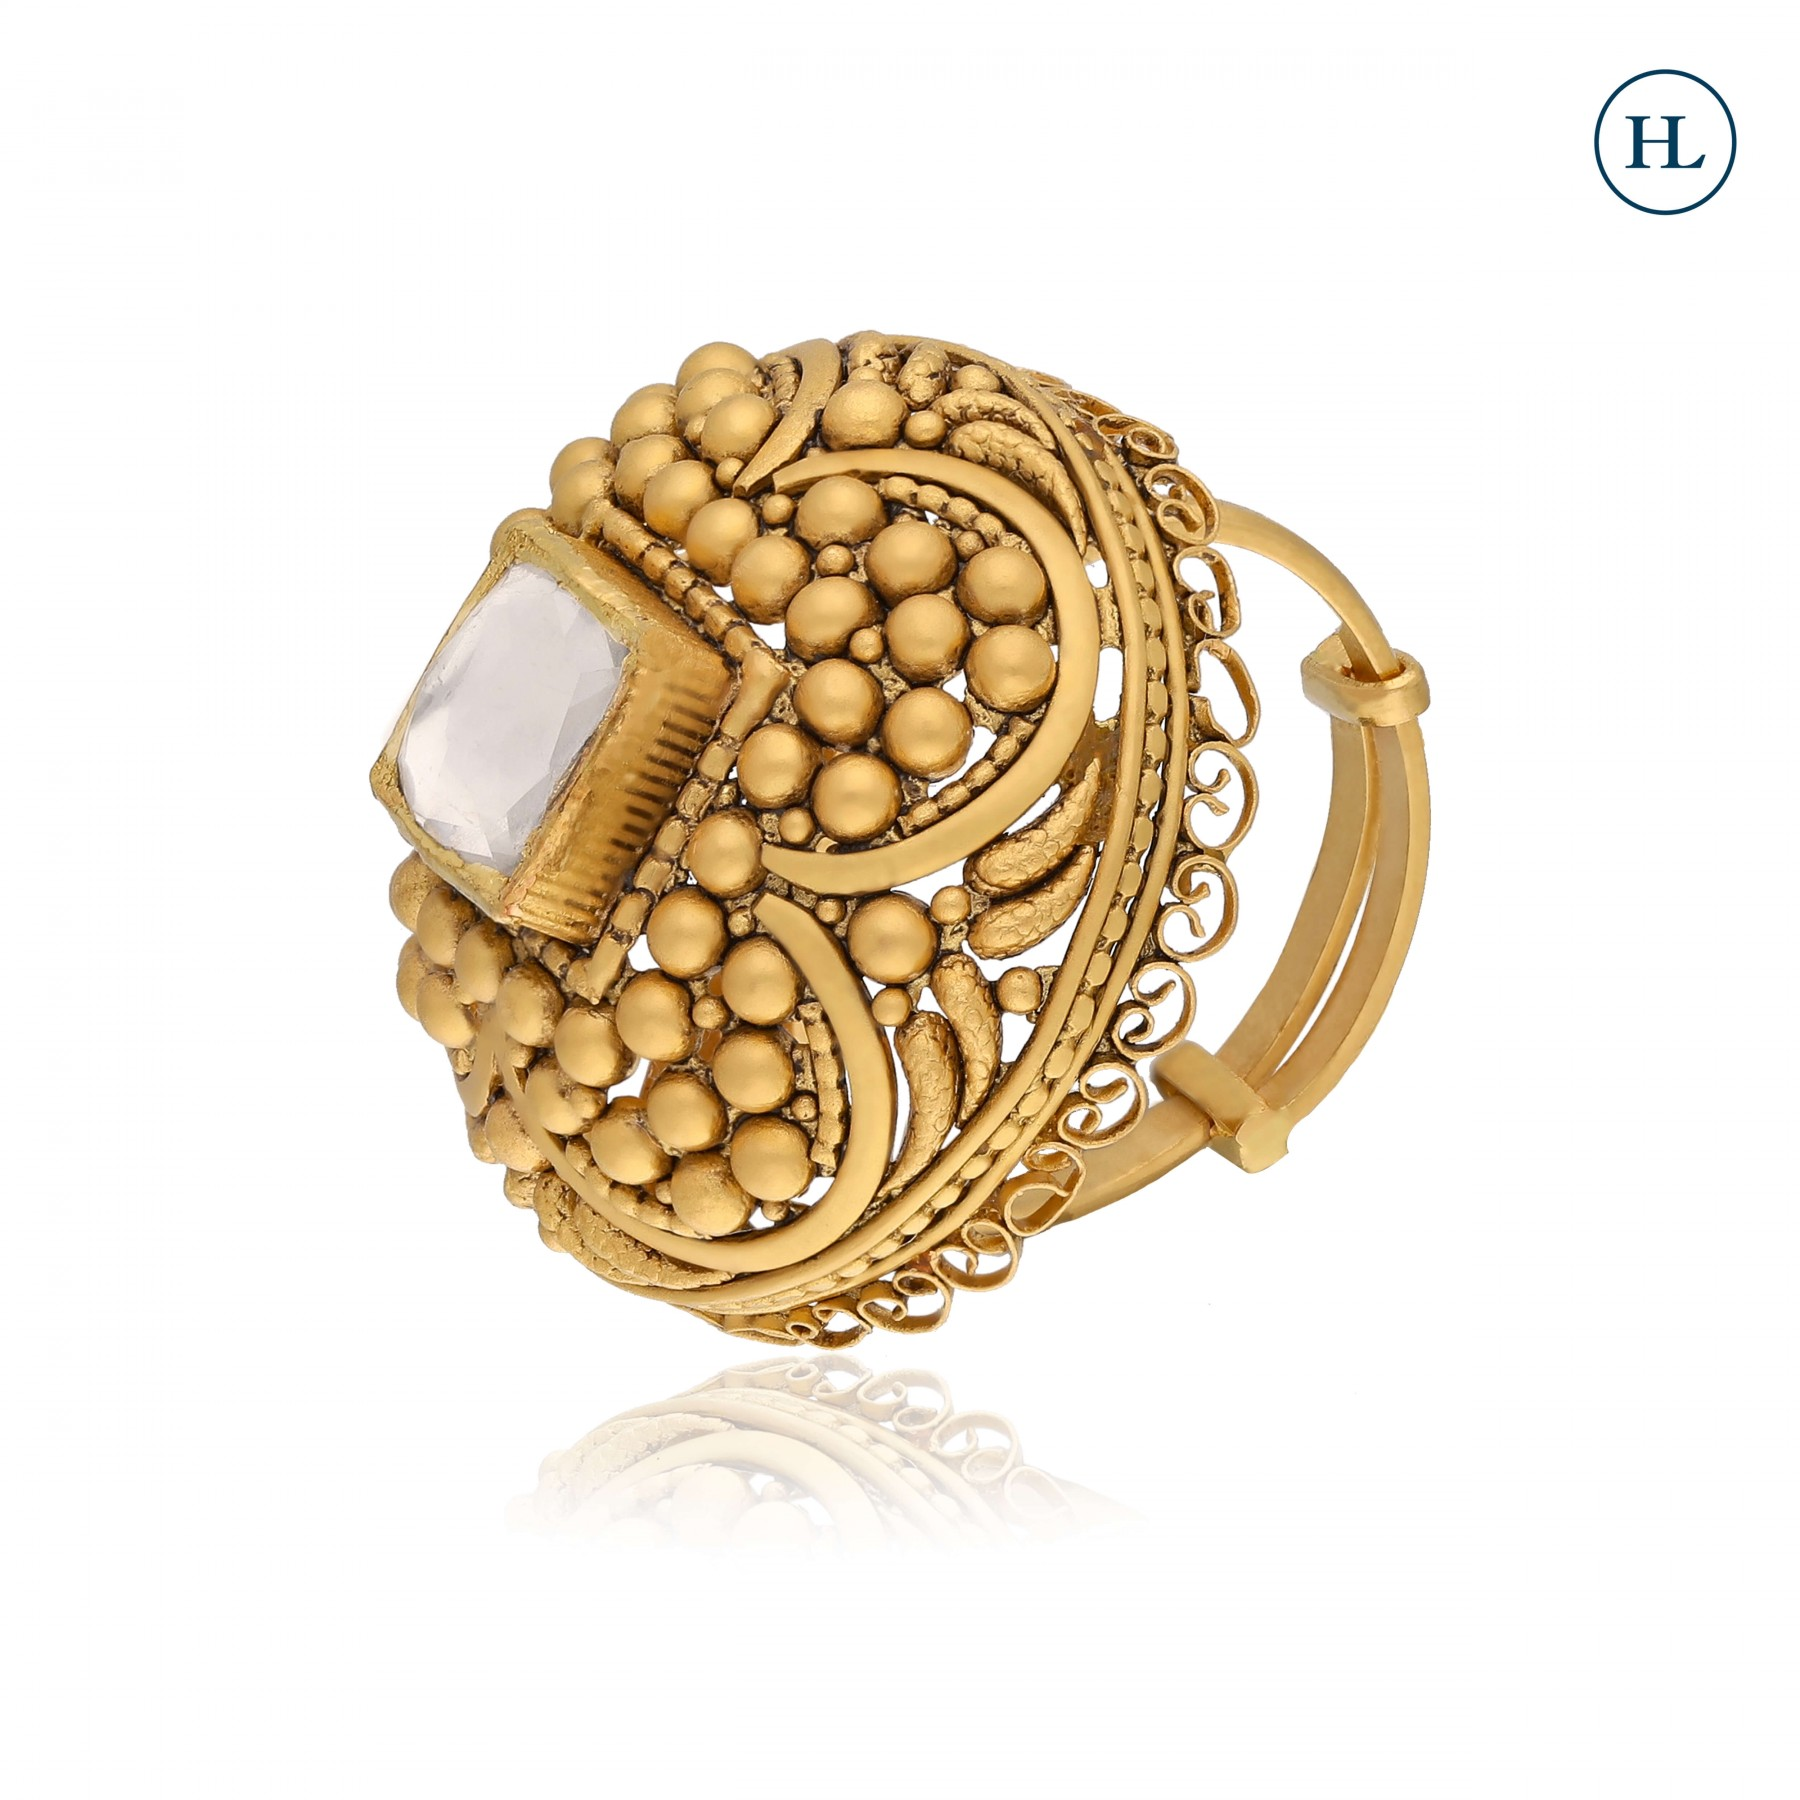 Antique-Styled Gold Ring